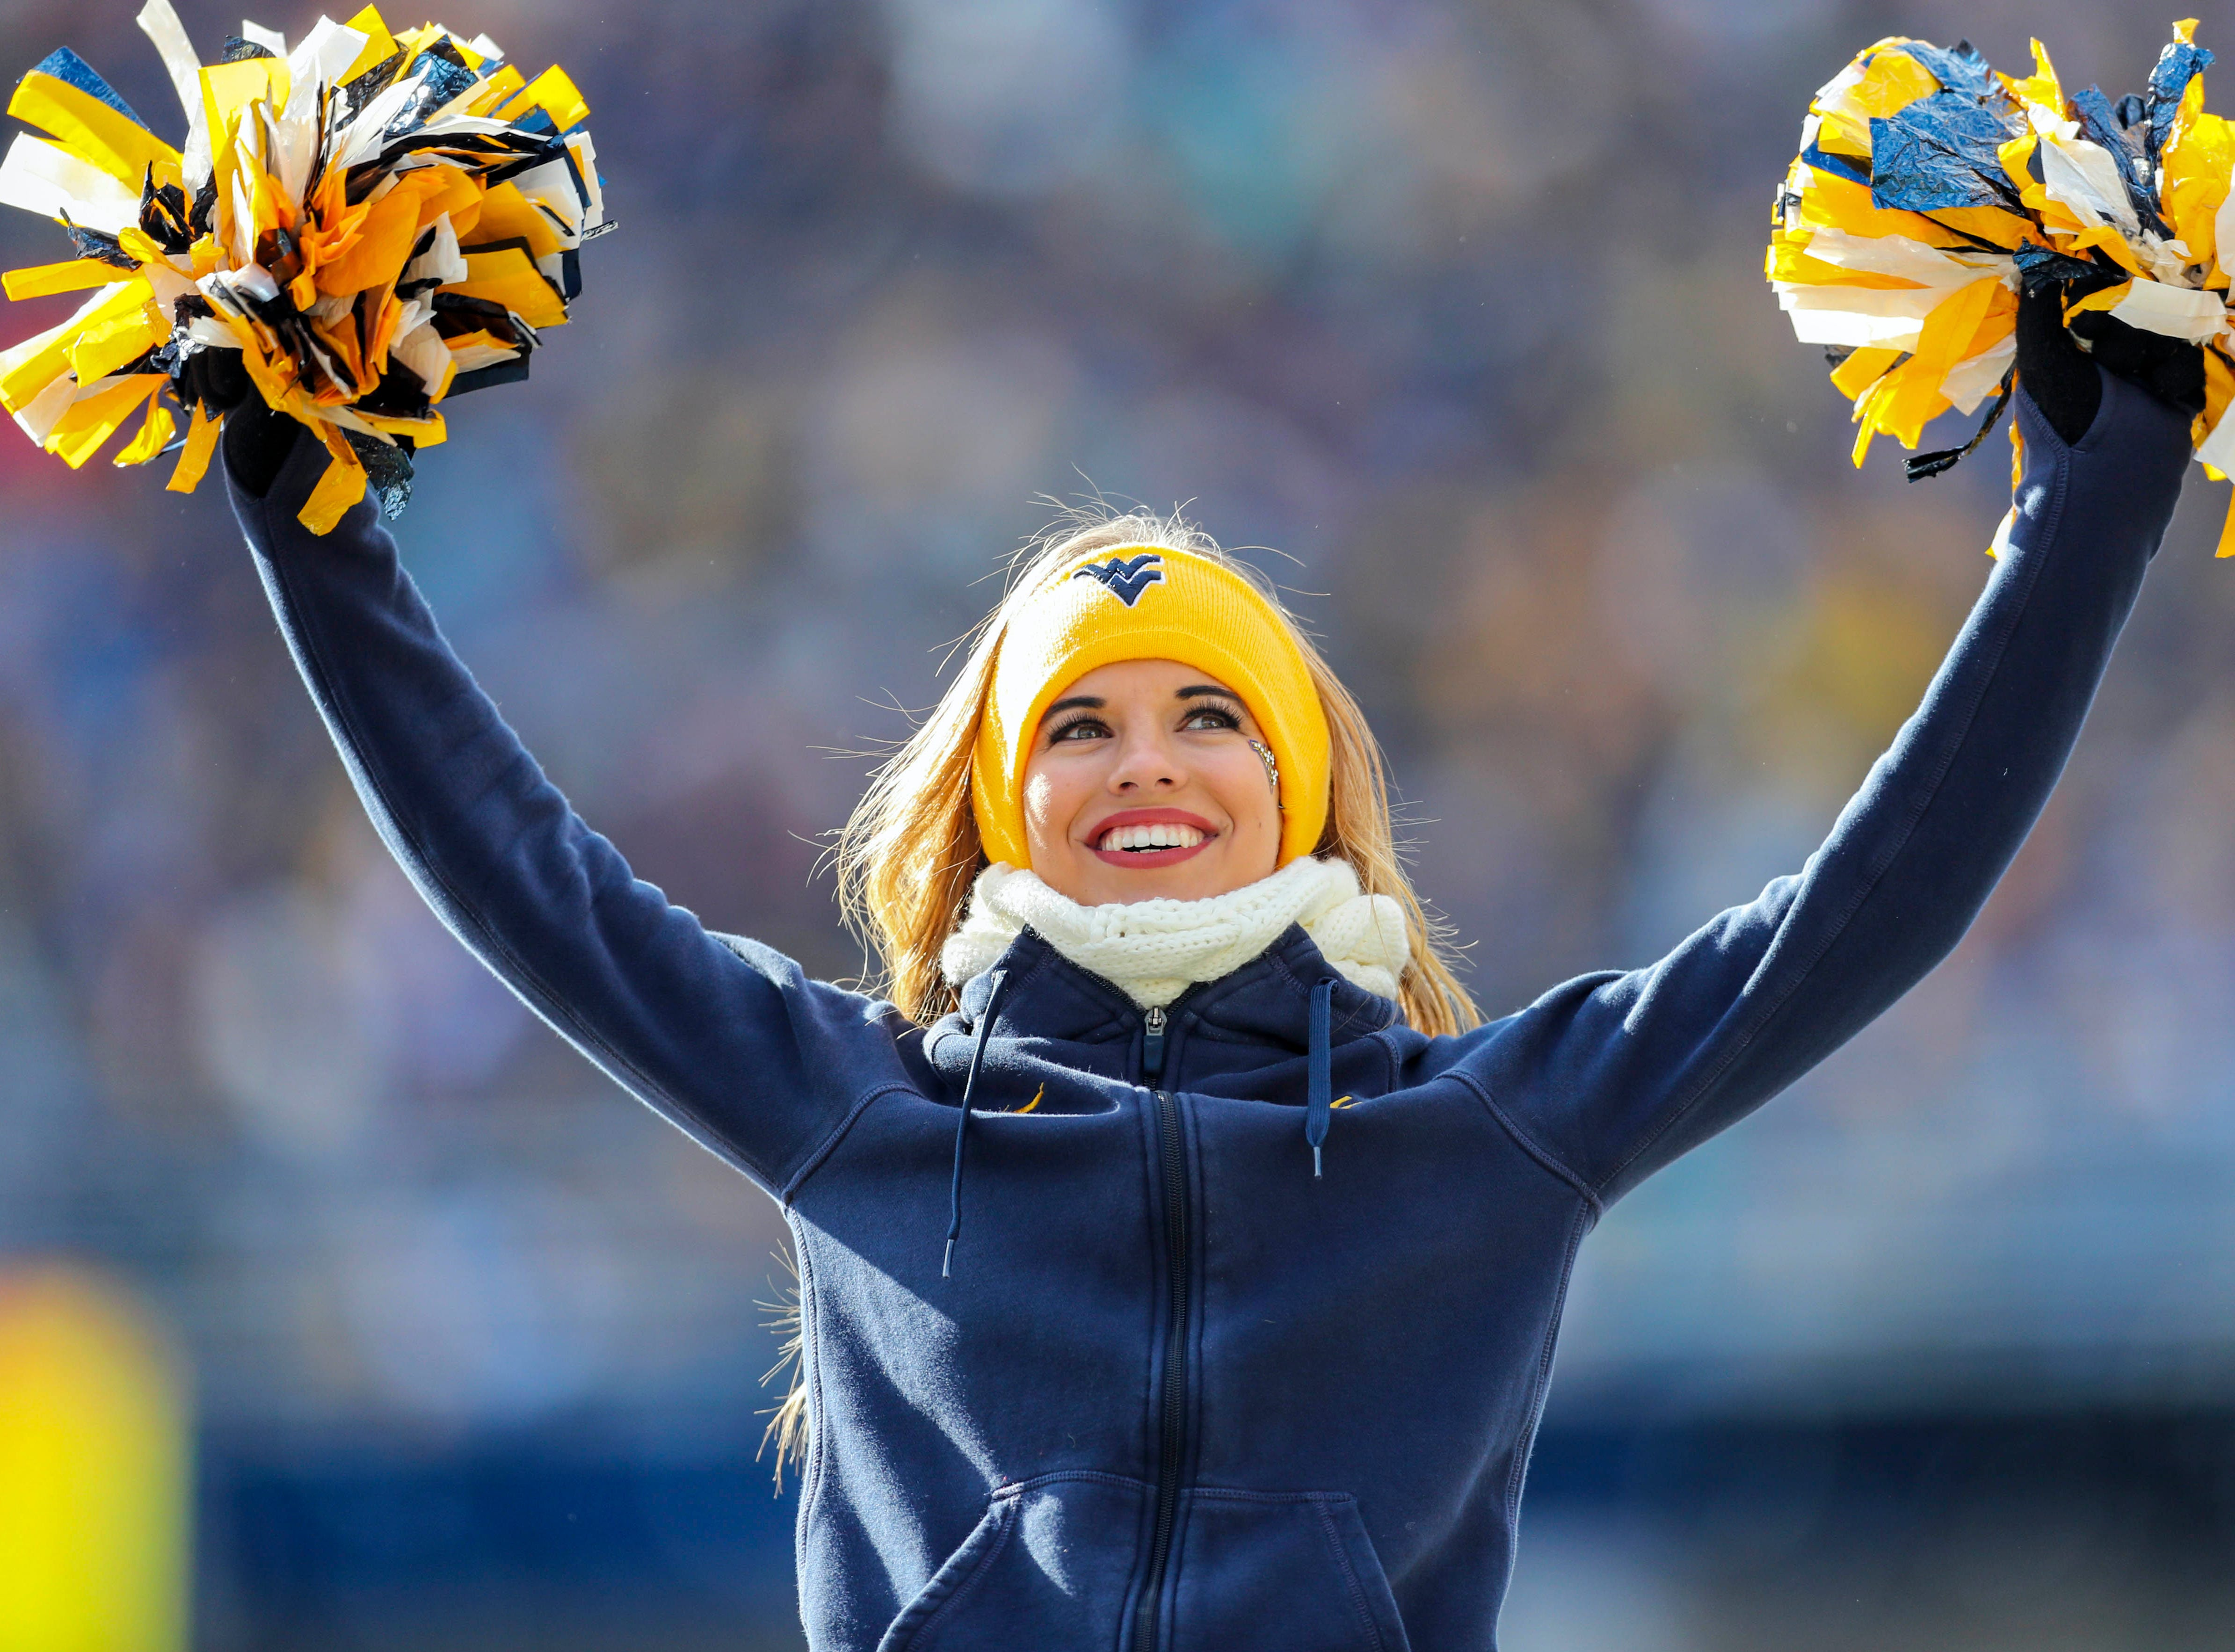 Week 11: A West Virginia Mountaineers cheerleader performs during the second quarter against the TCU Horned Frogs at Mountaineer Field at Milan Puskar Stadium.